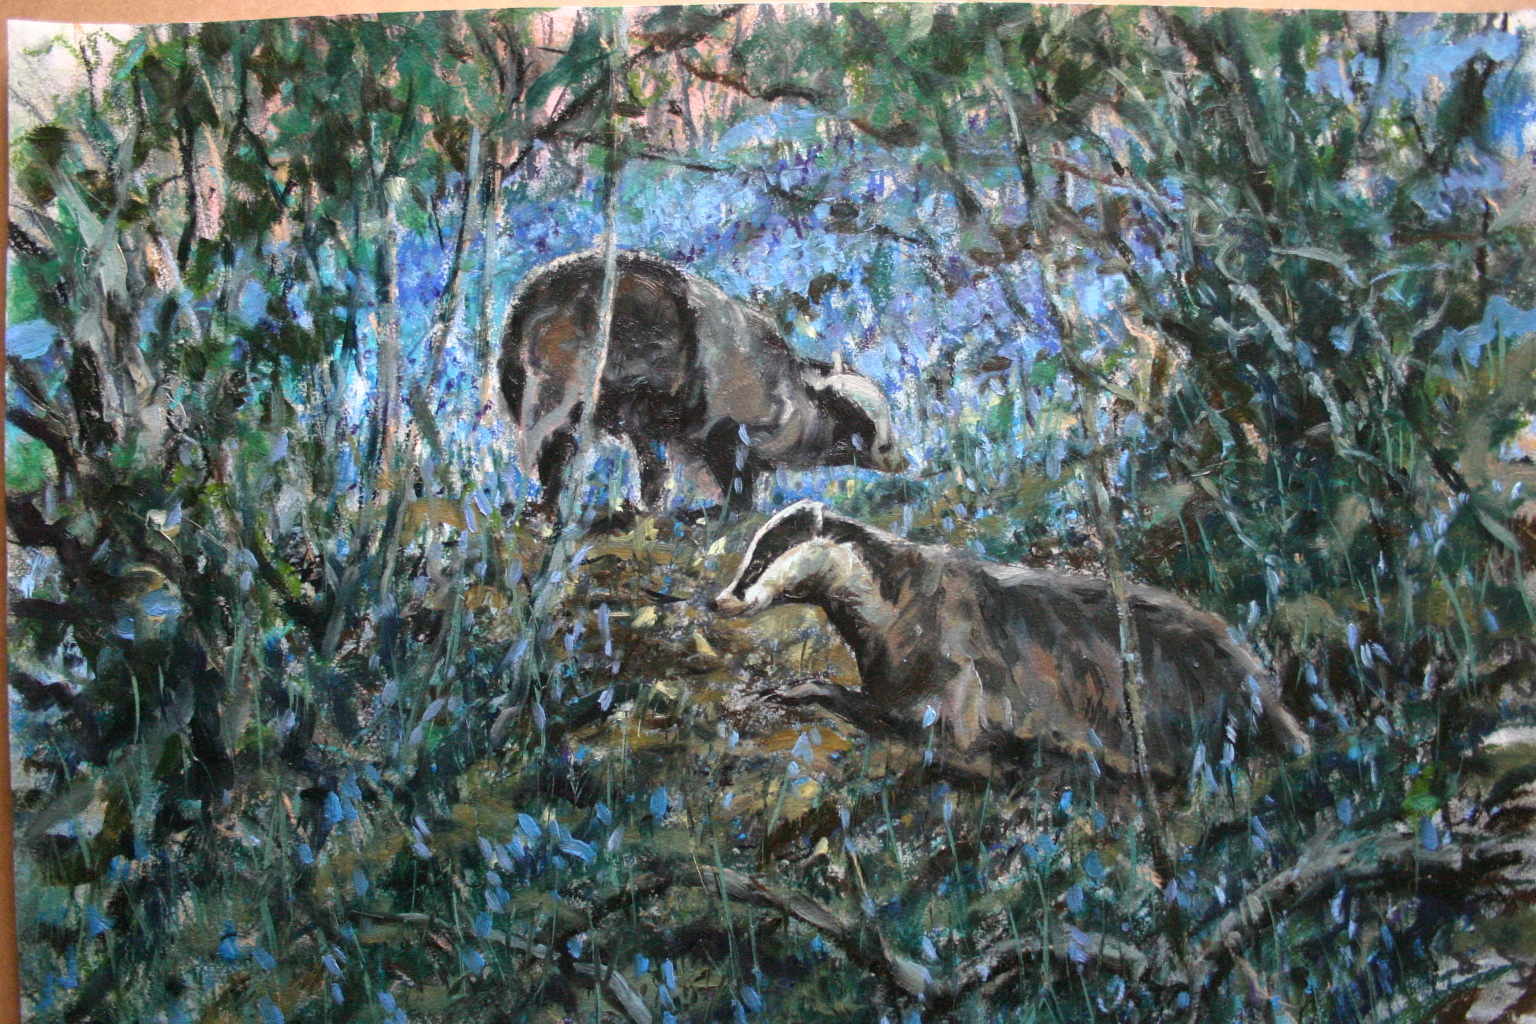 Badgers Emerging into Bluebells. Nidd Gorge